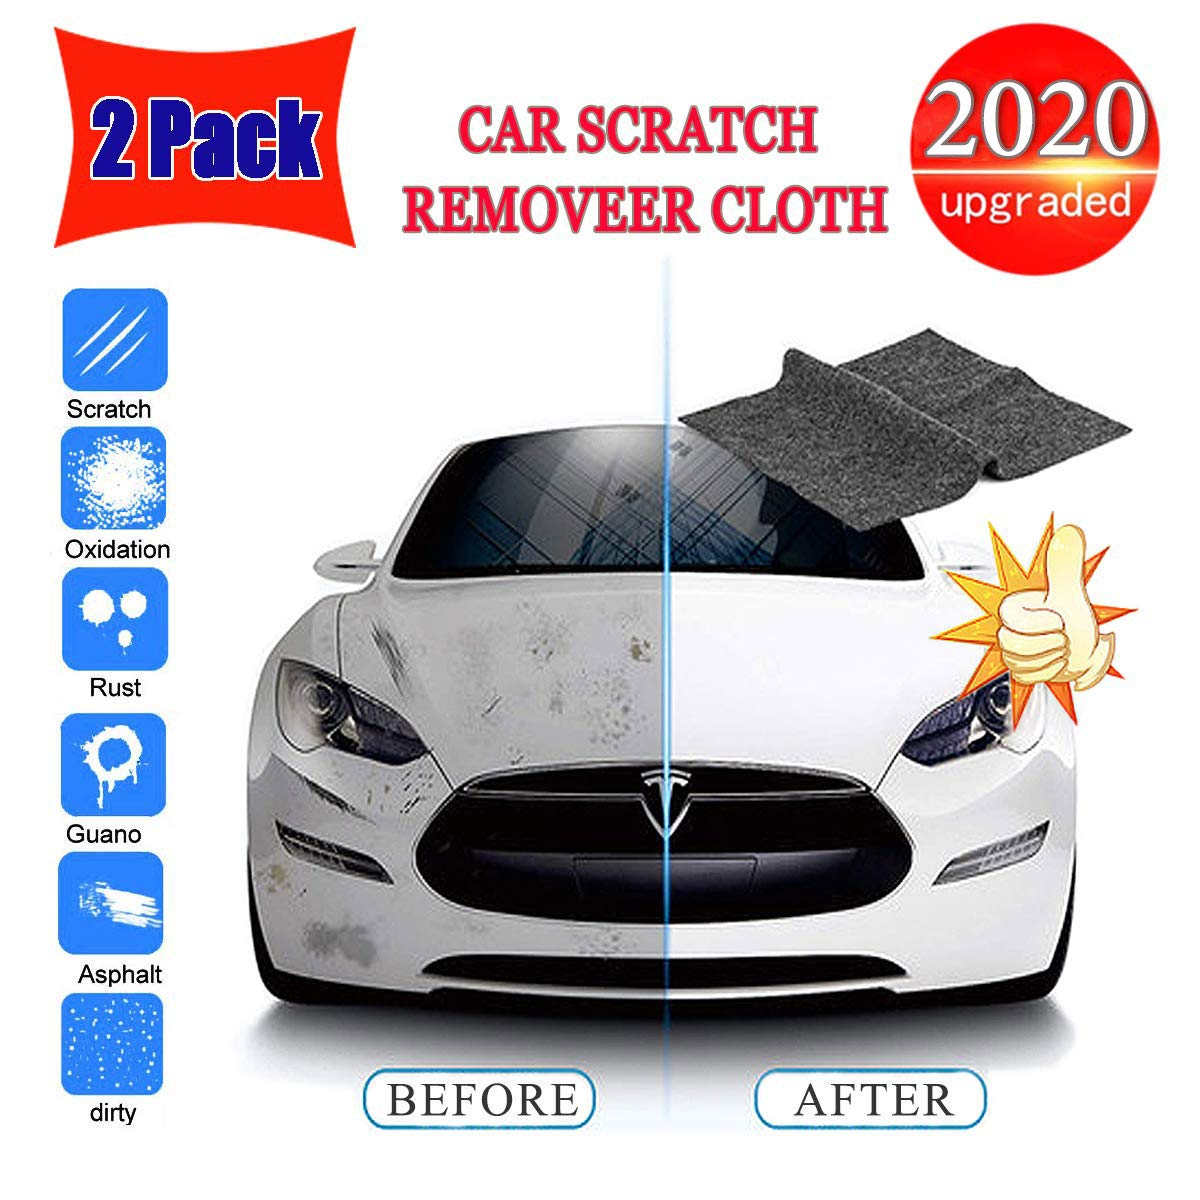 TTOUADY 2 Pack Multipurpose Car Scratch Remover Cloth, Upgraded Car Paint Scratch Repair Cloth, Nanotechnology to Repair Car Scratches and Car Surface Polishing